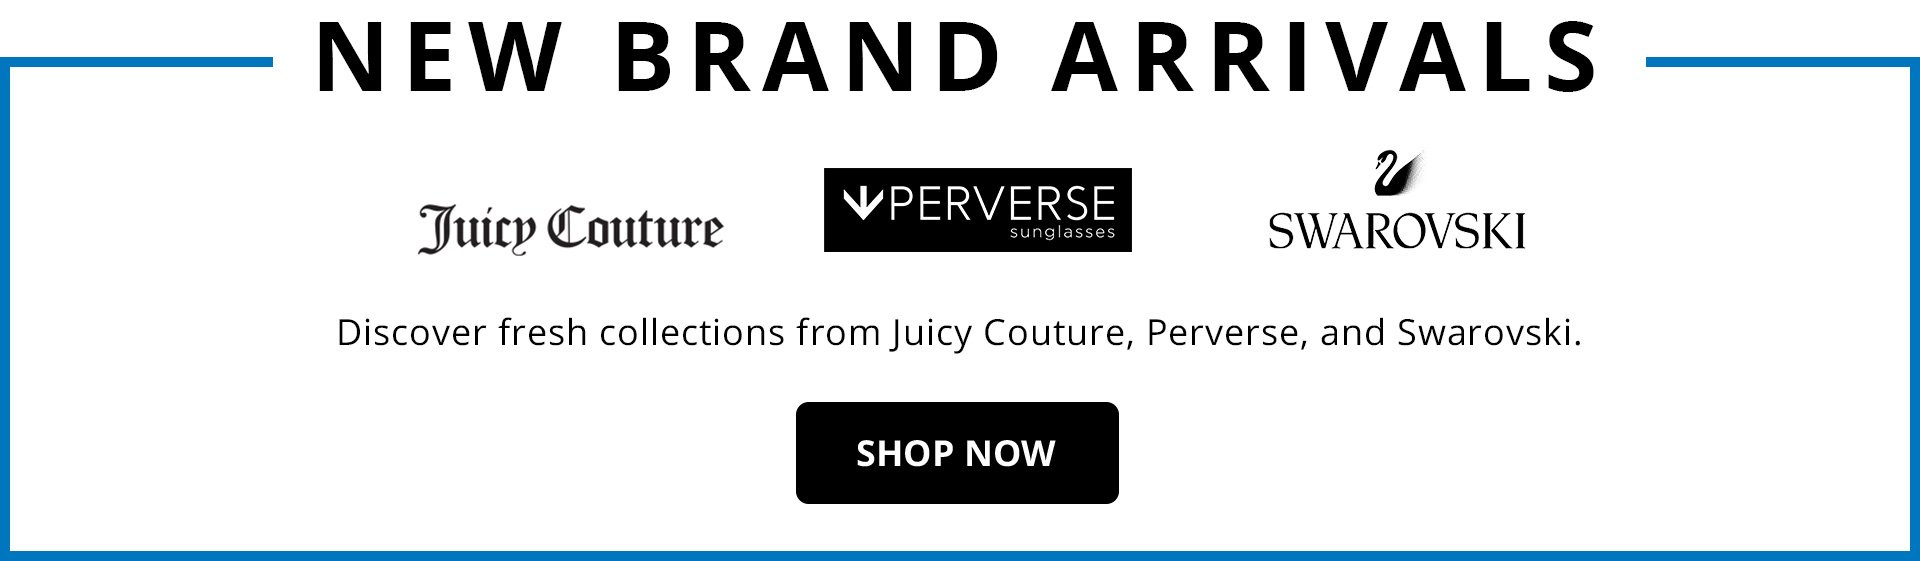 New Brand Arrivals Banner. Juicy Couture, PERVERSE Sunglasses and Swarovski.